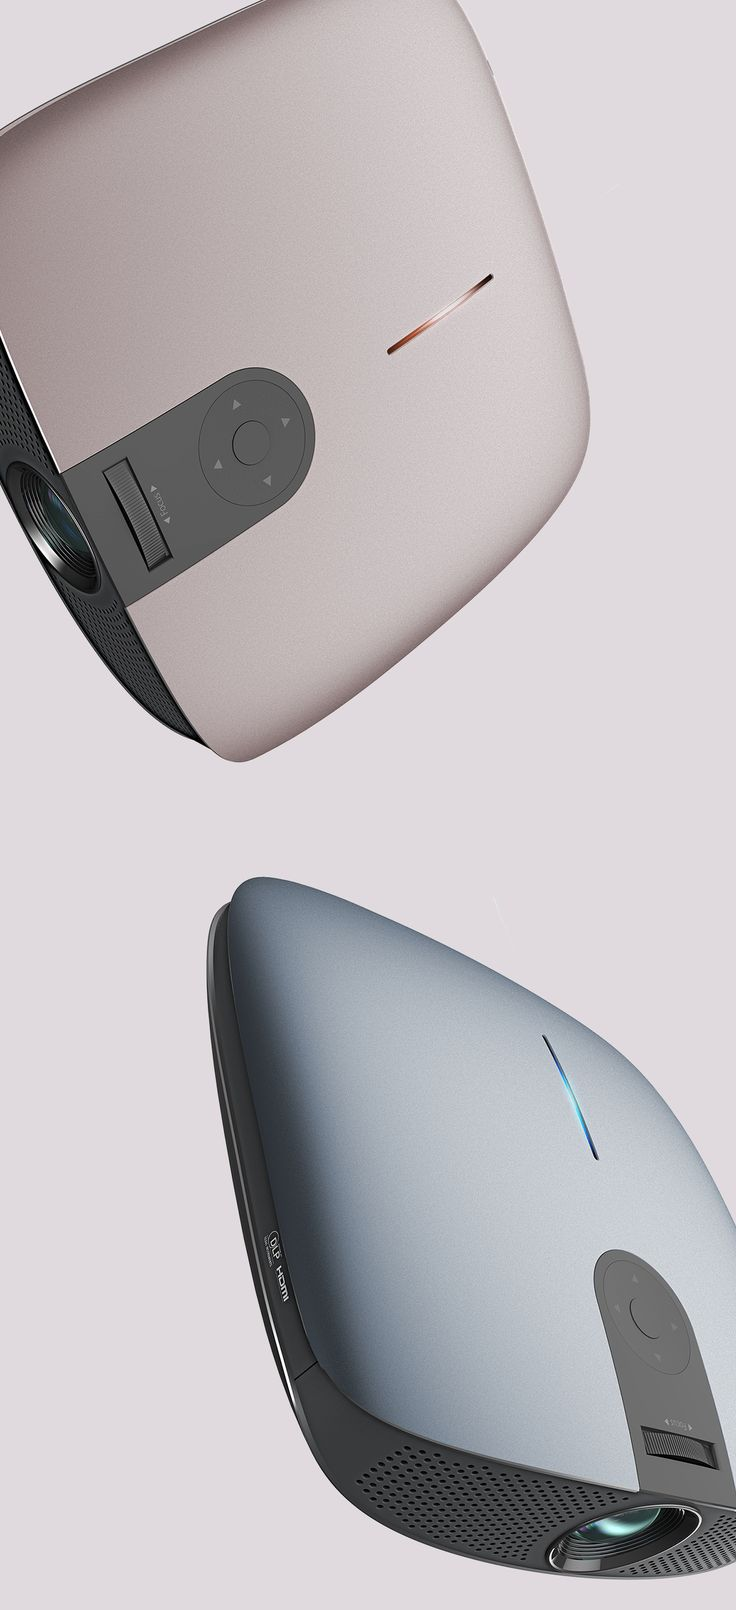 Projector_product design on Behance